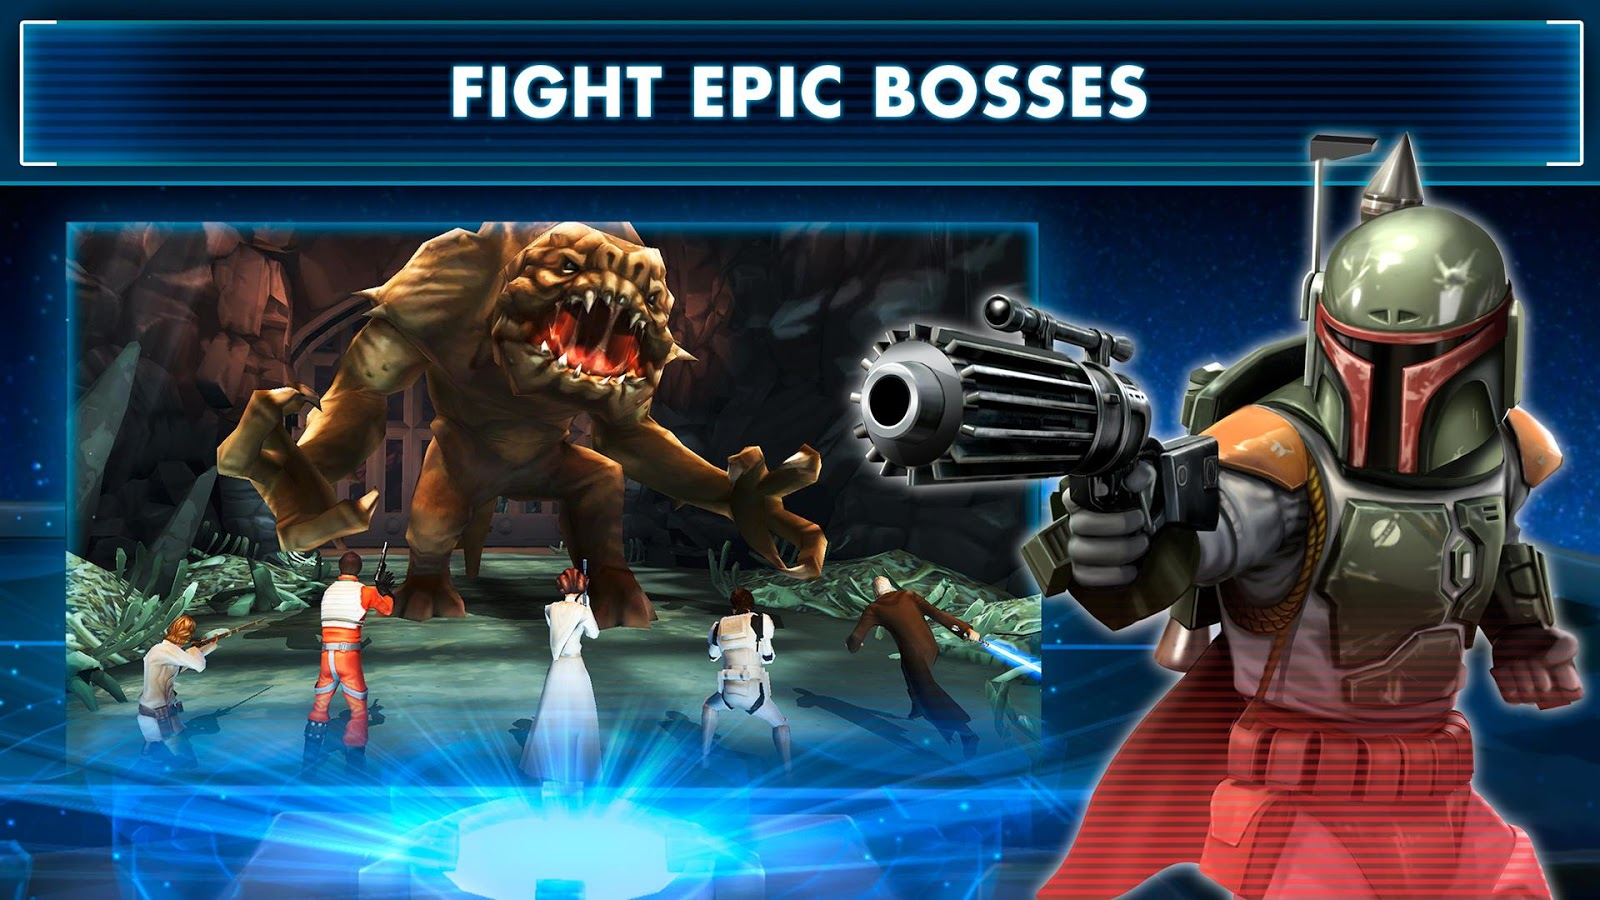 Android Cheats - Star Wars: Galaxy of Heroes ... - ign.com